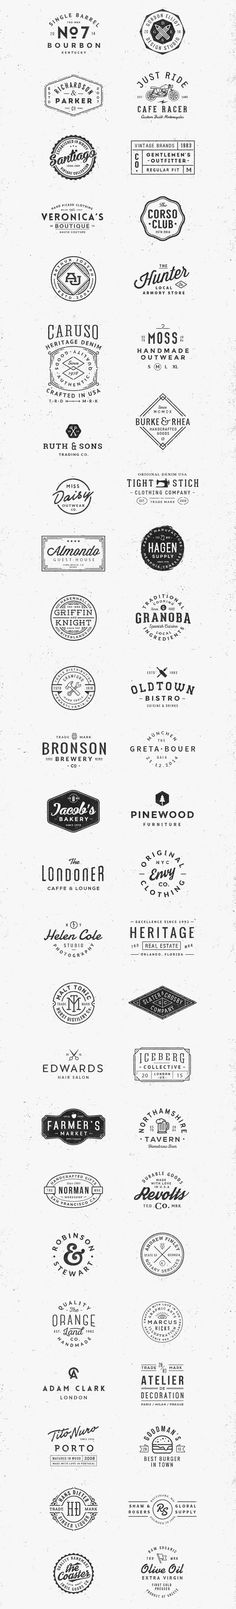 The bundle includes 50 high quality vintage logos for Adobe Photoshop and Illustrator.                                                                                                                                                      More